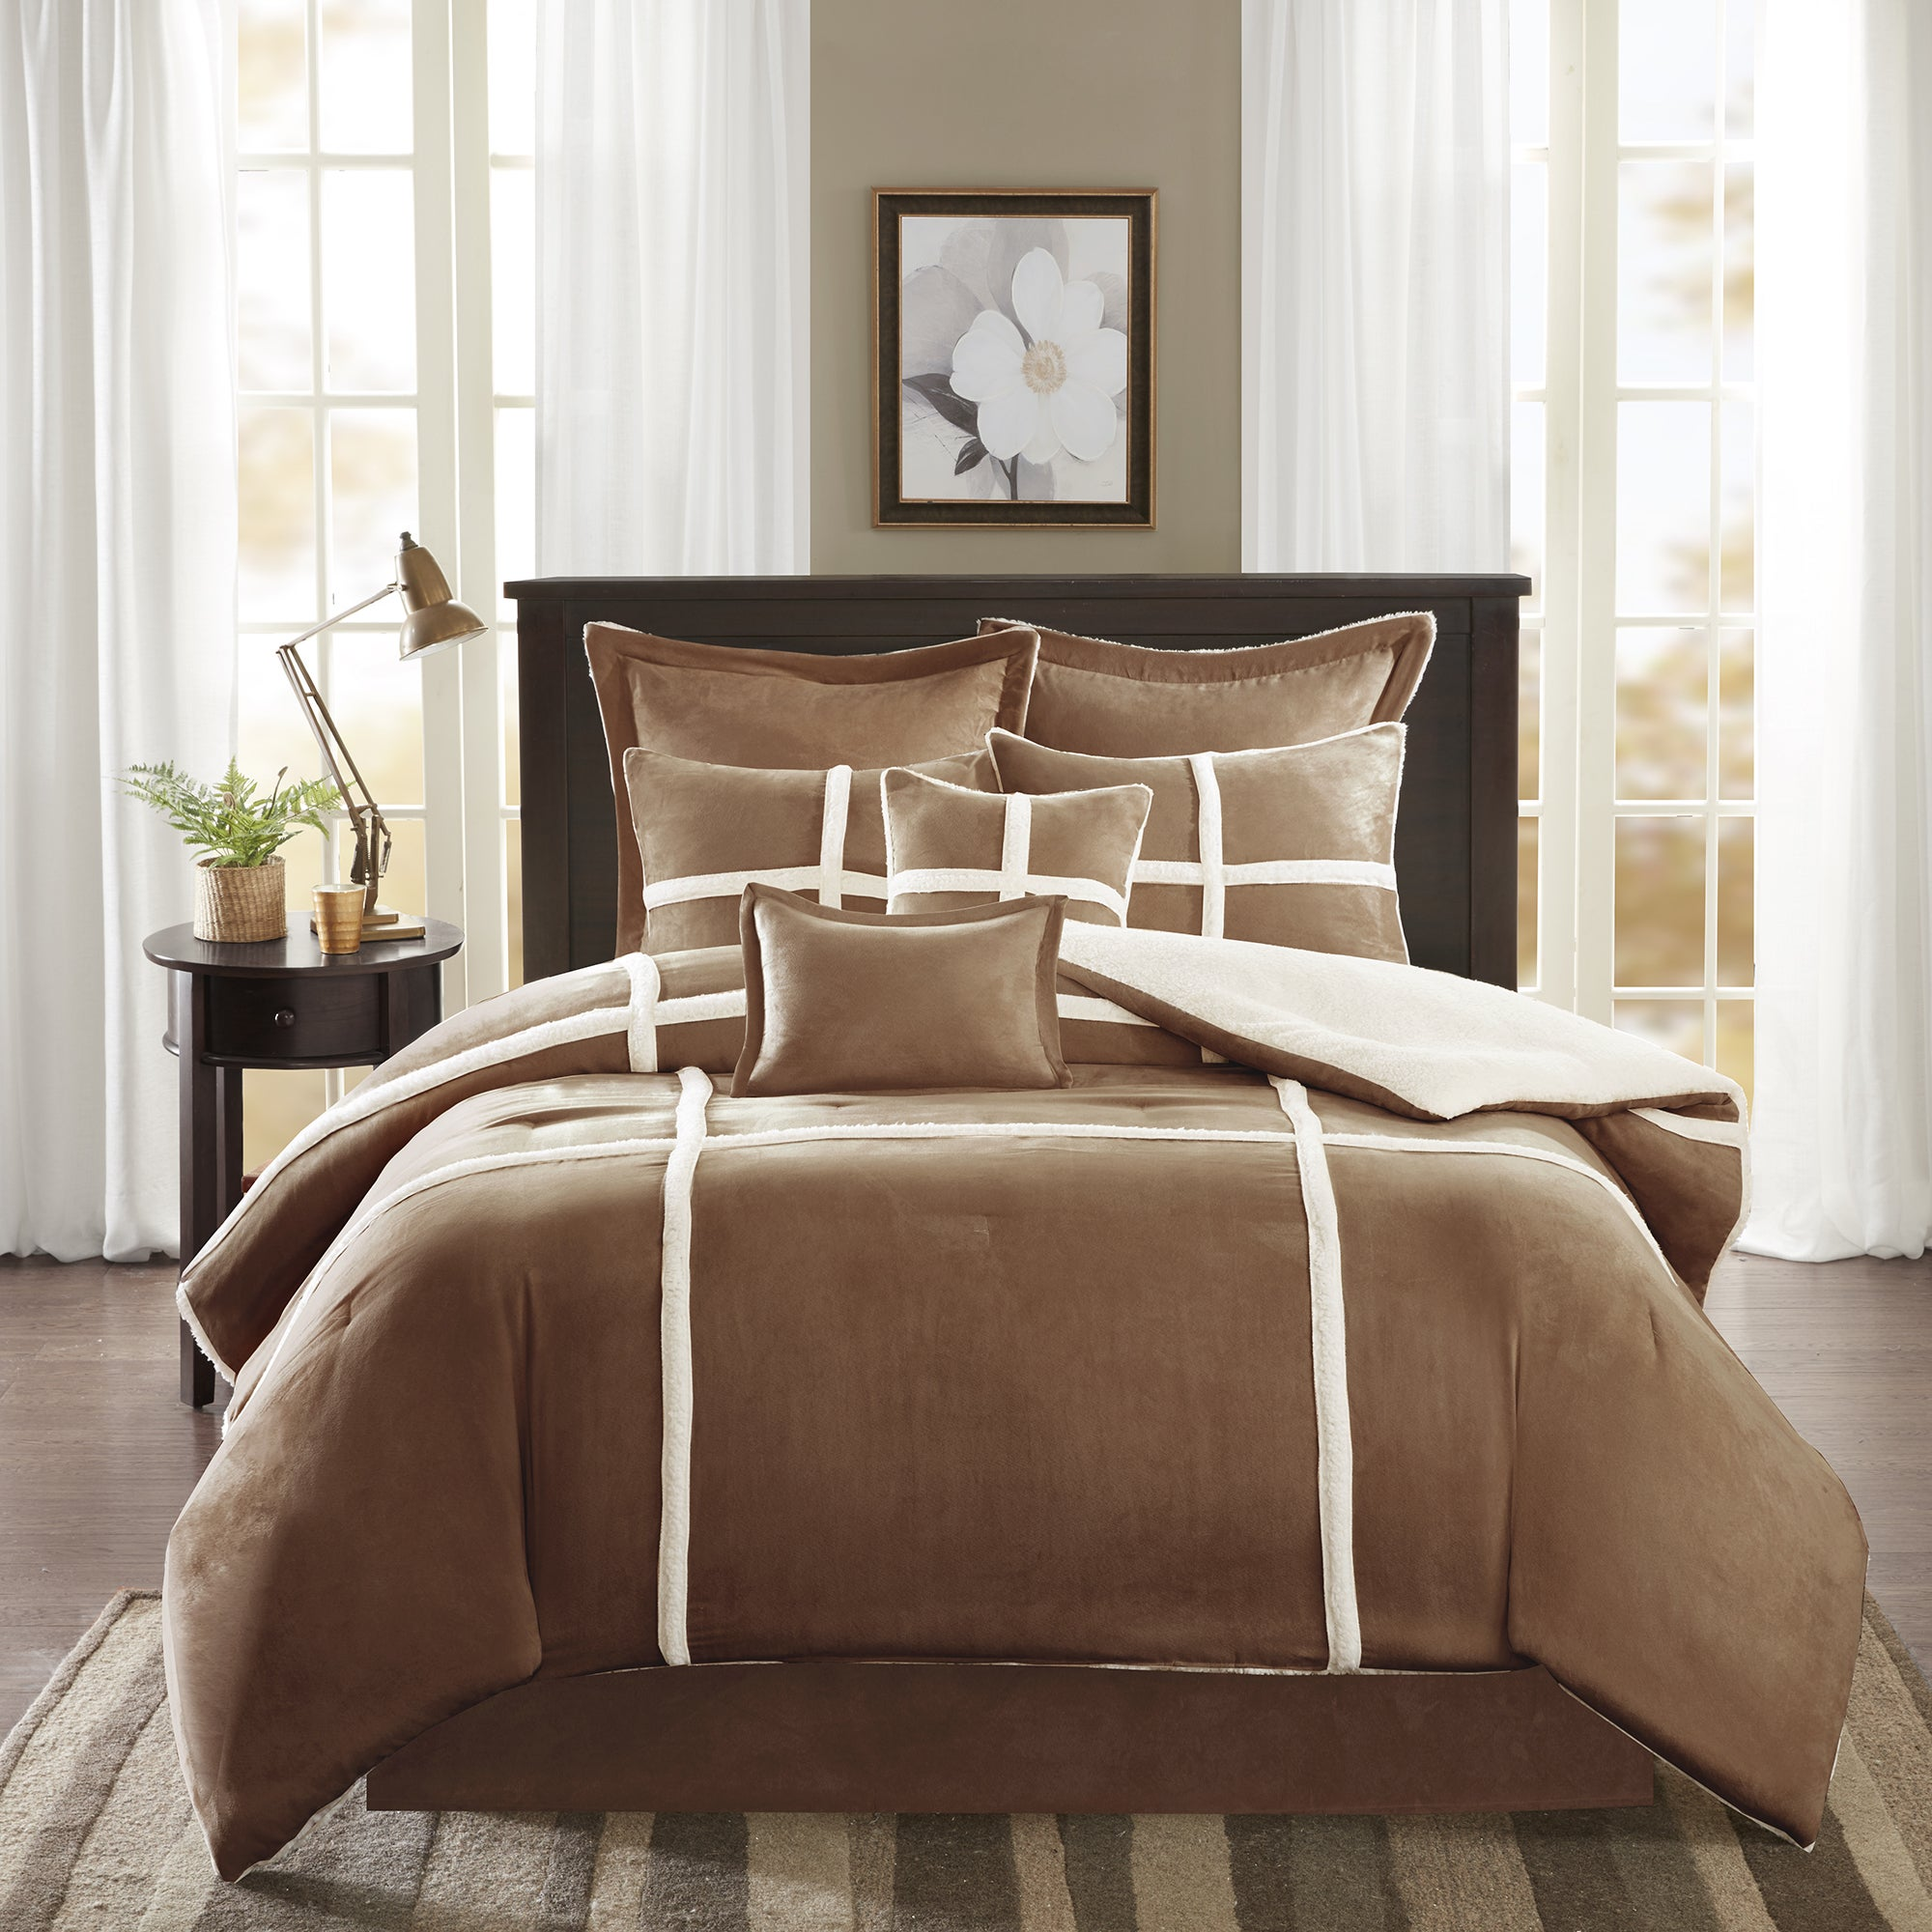 cover sweetgalas micro bedding impulse coverlet suede faux comforter duvet set